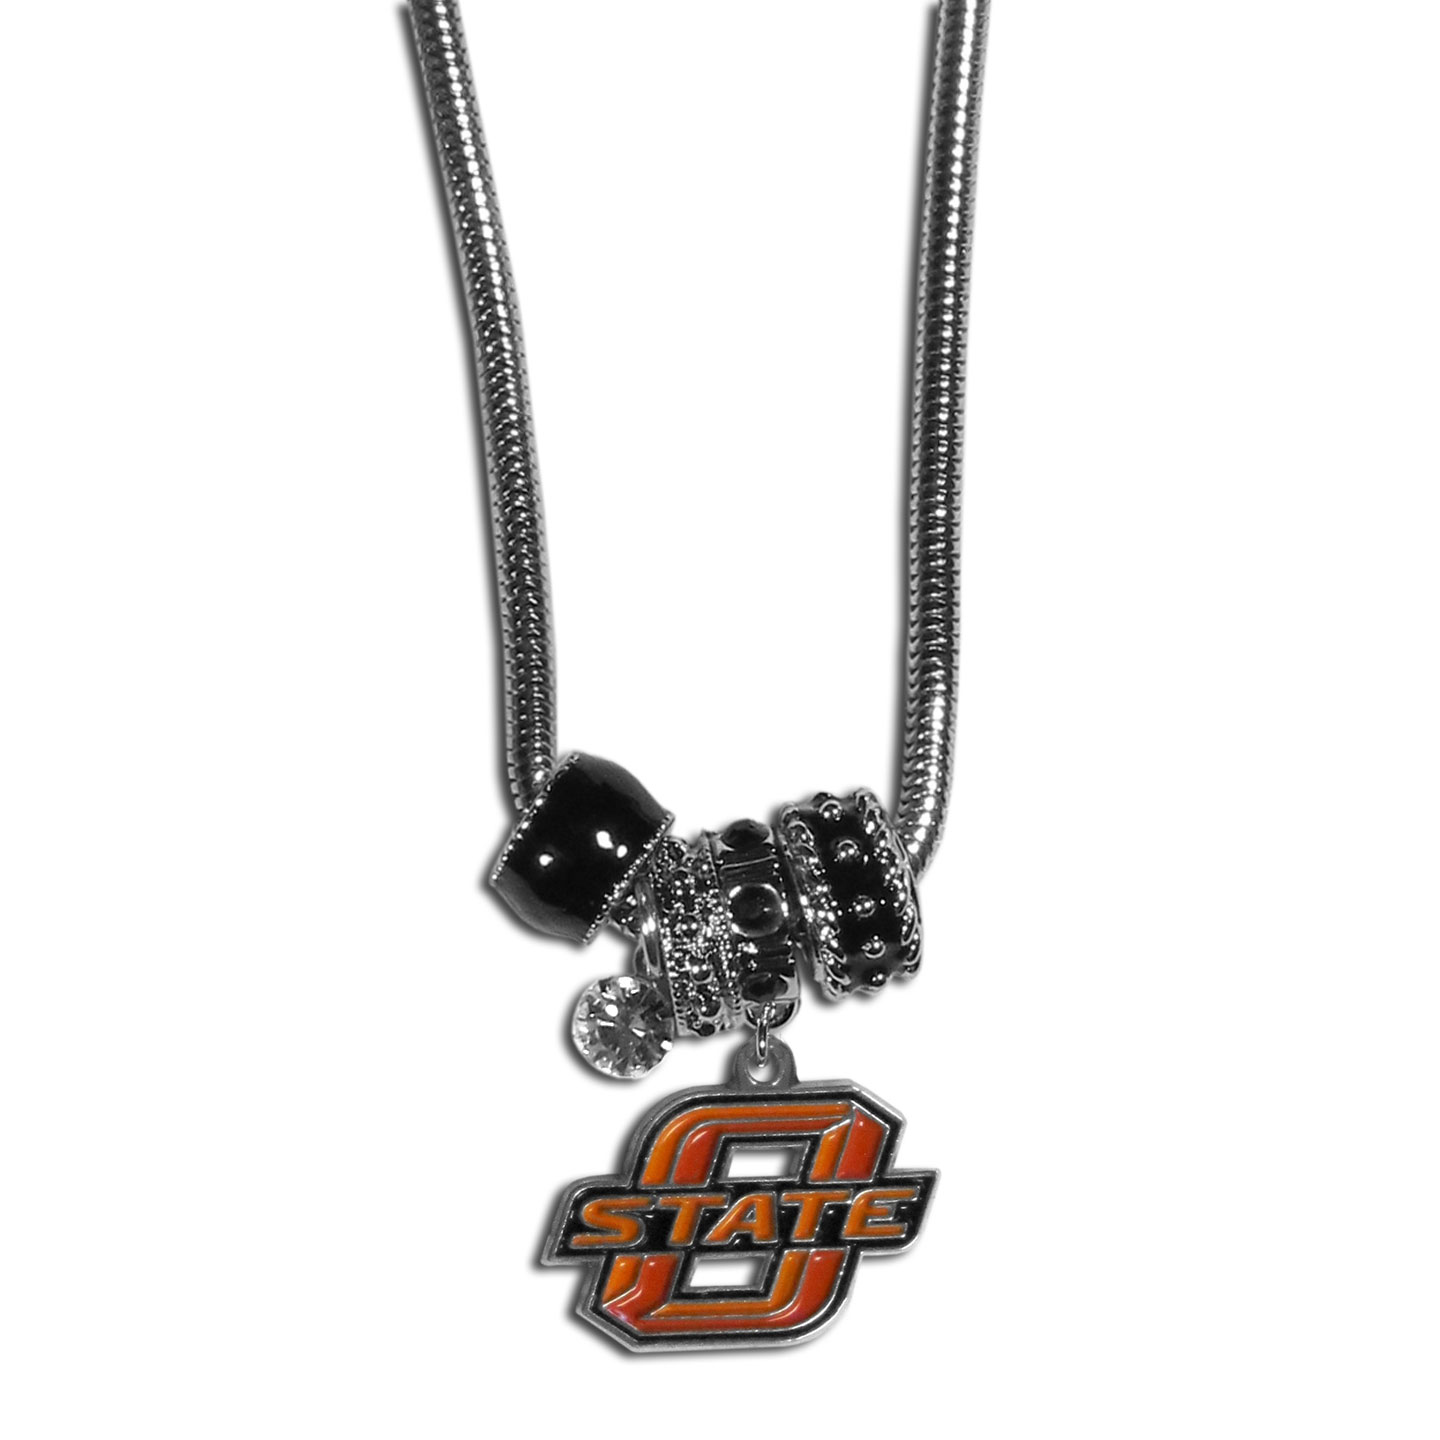 Oklahoma State Cowboys Euro Bead Necklace - We have combined the wildly popular Euro style beads with your favorite team to create our Oklahoma State Cowboys bead necklace. The 18 inch snake chain features 4 Euro beads with enameled team colors and rhinestone accents with a high polish, nickel free charm and rhinestone charm. Perfect way to show off your team pride.